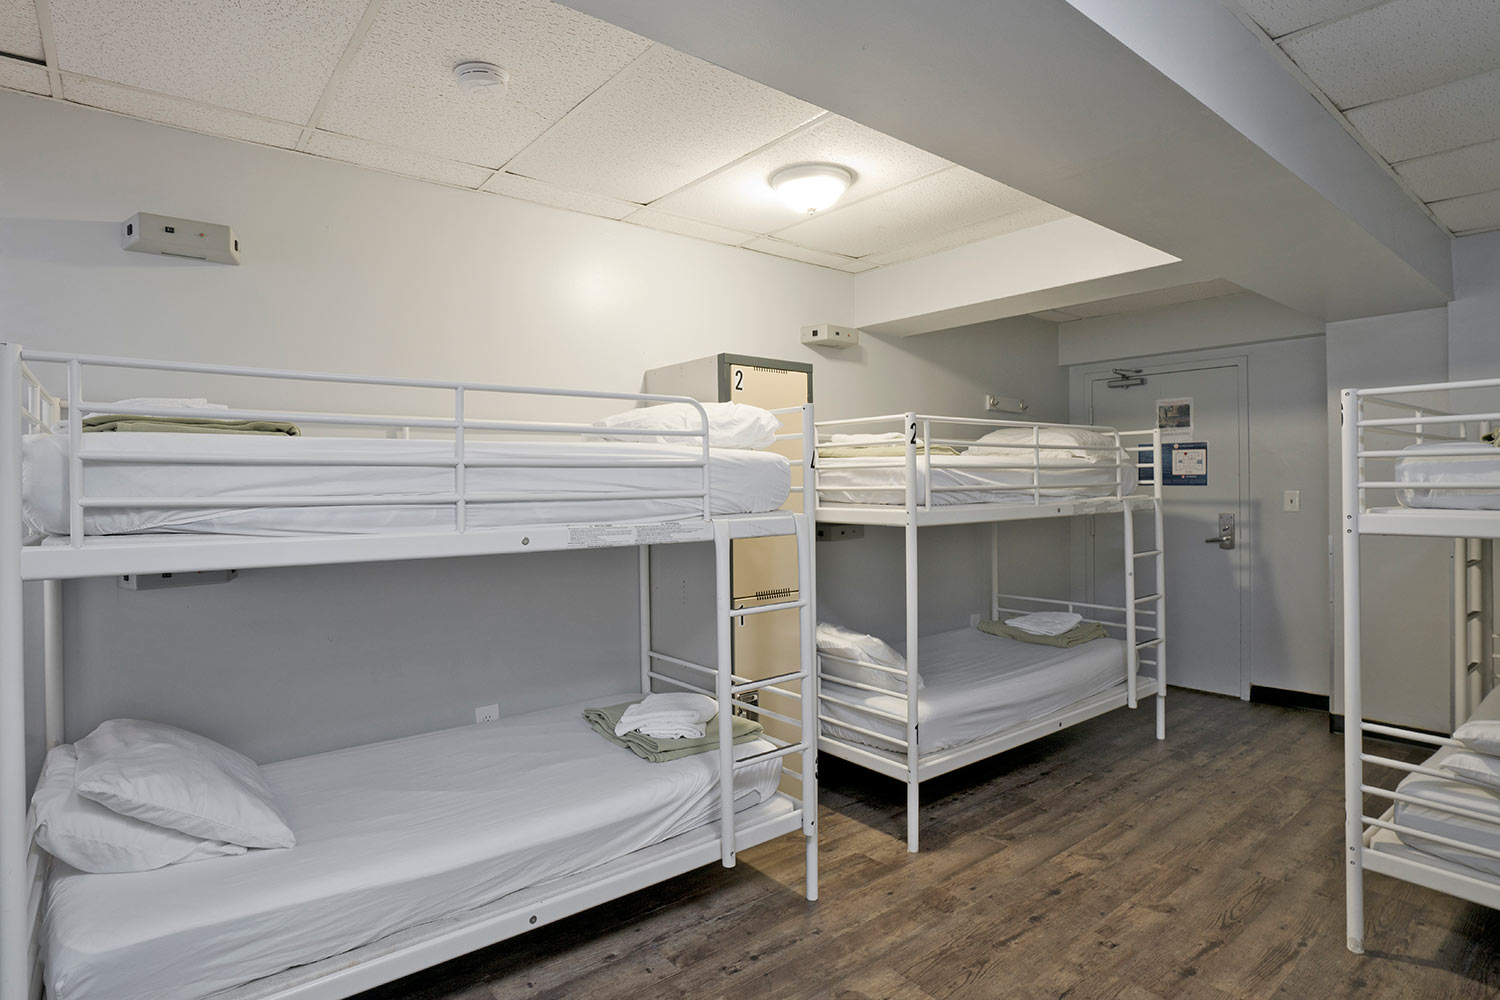 Room view with 6 bunk beds